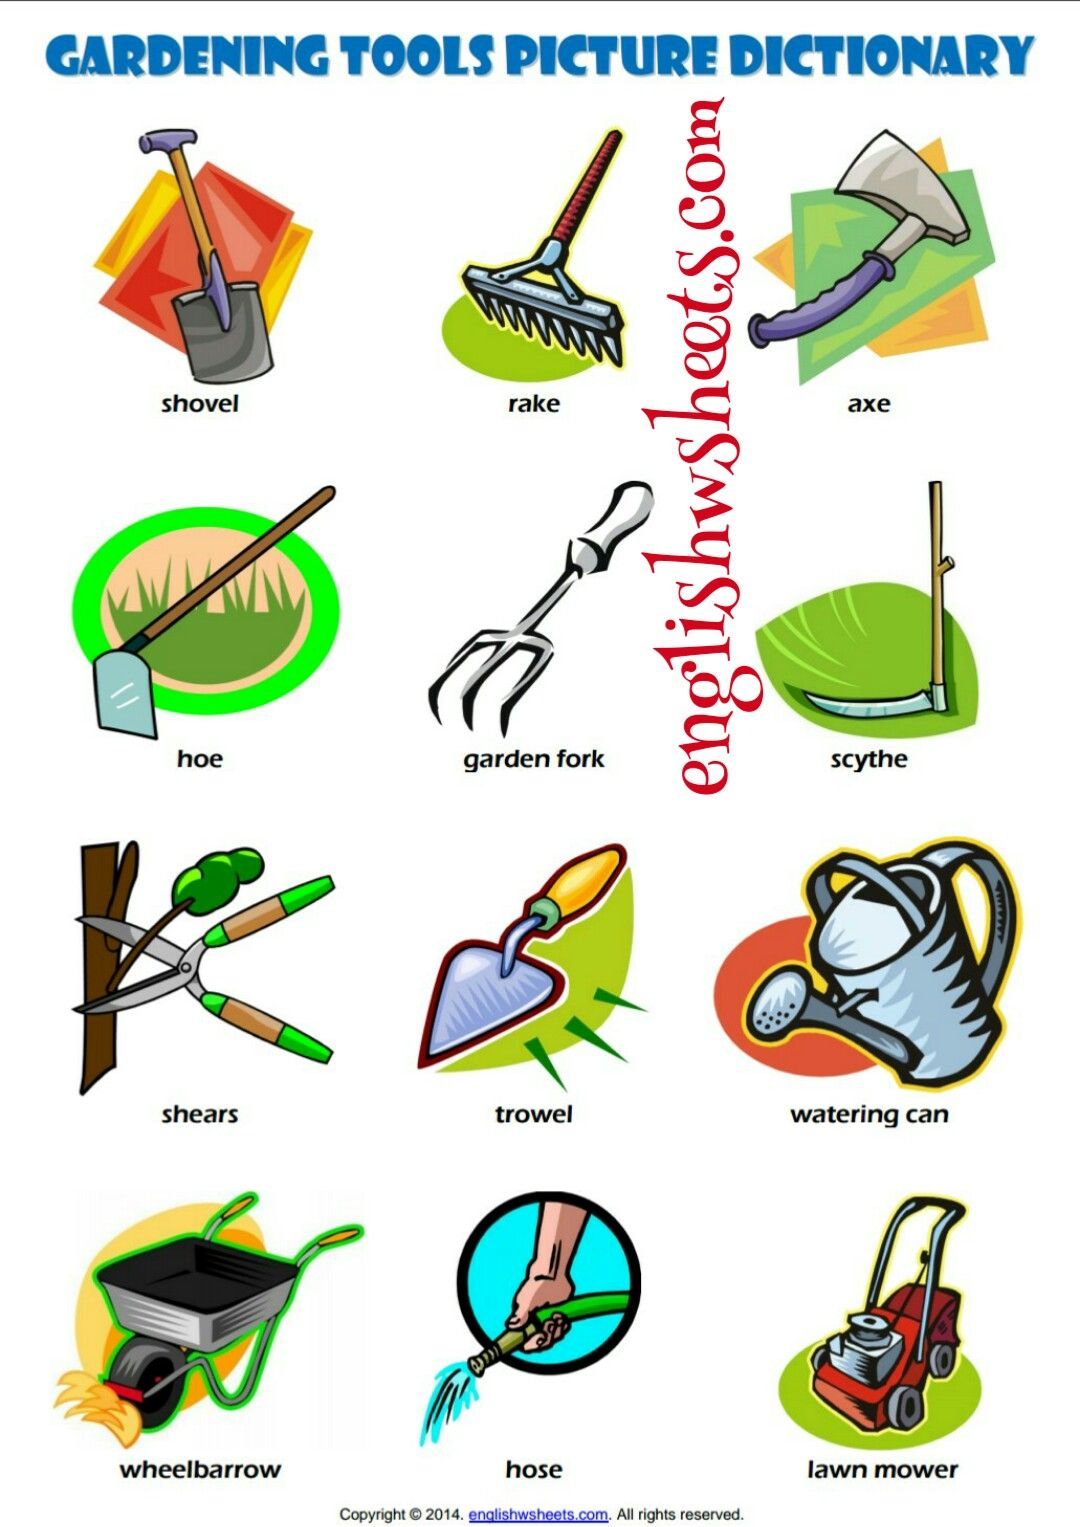 Esl Printable Gardening Tools Vocabulary Worksheets For Kids Esl Printable Gardening Tools